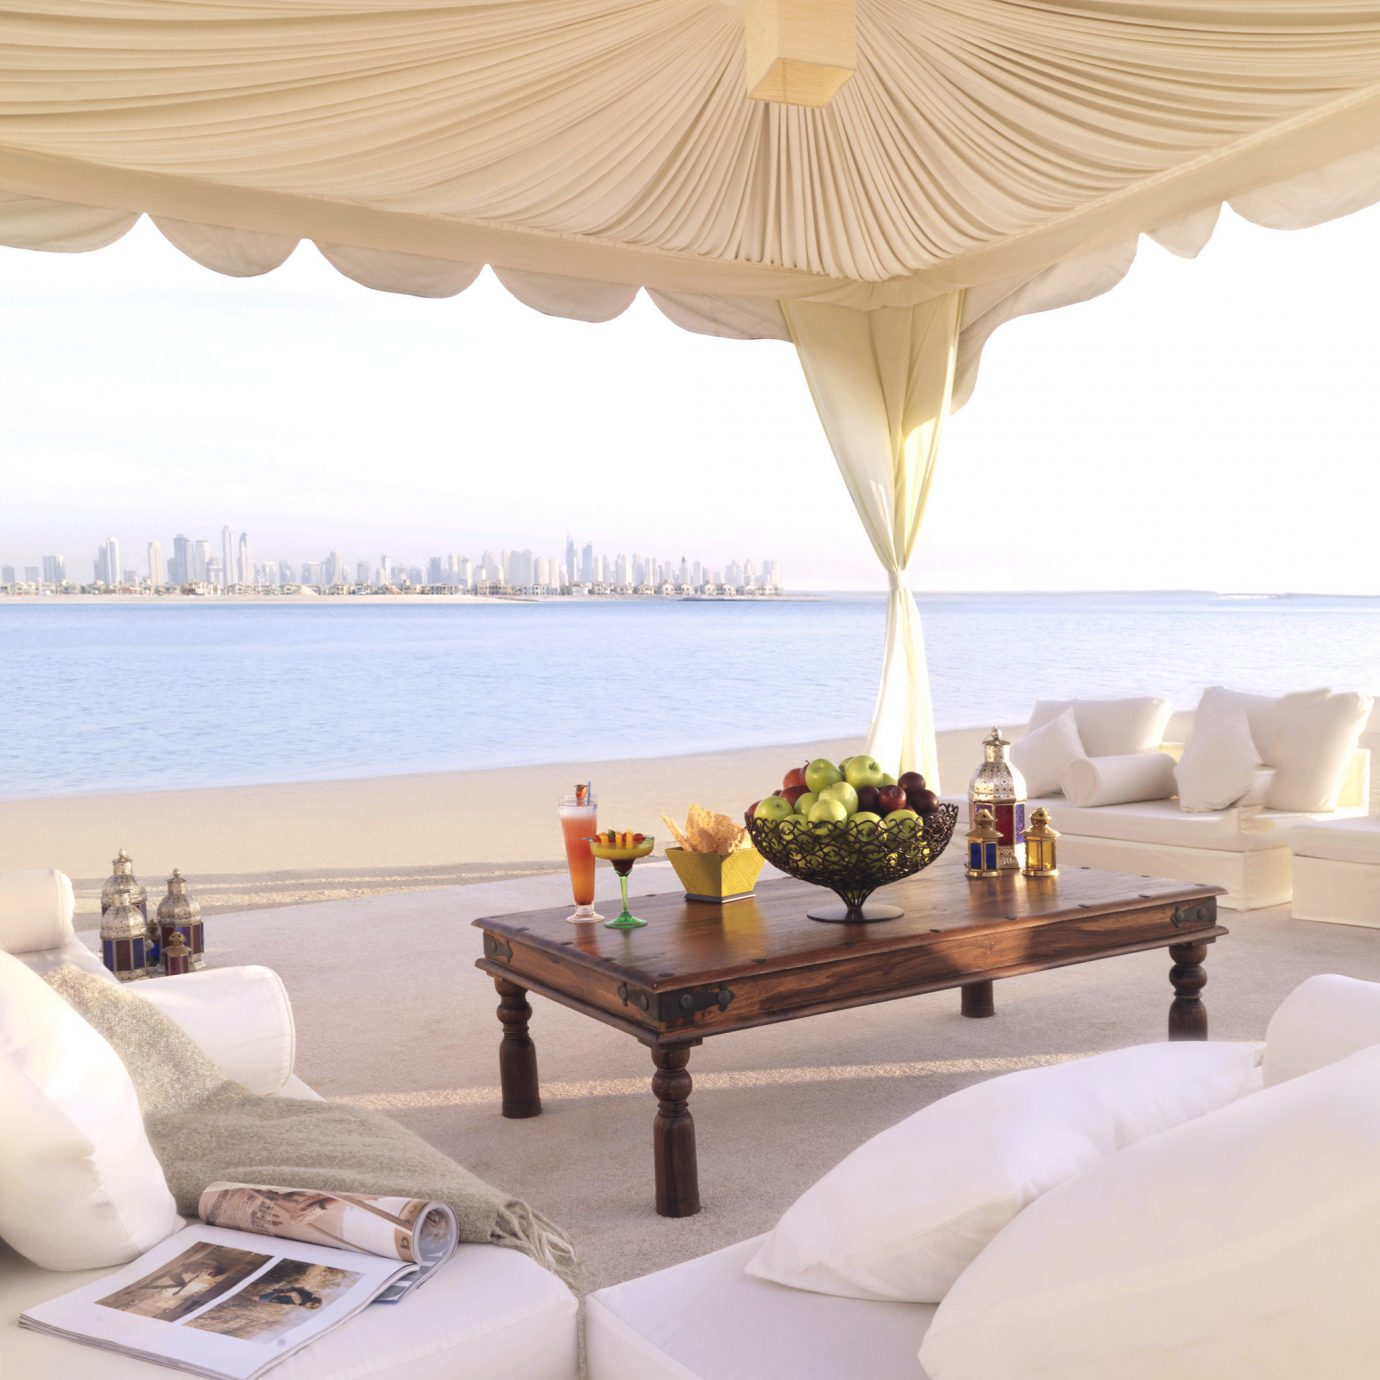 Drink Dubai Food + Drink Hotels Lounge Luxury Travel Middle East Resort Waterfront living room